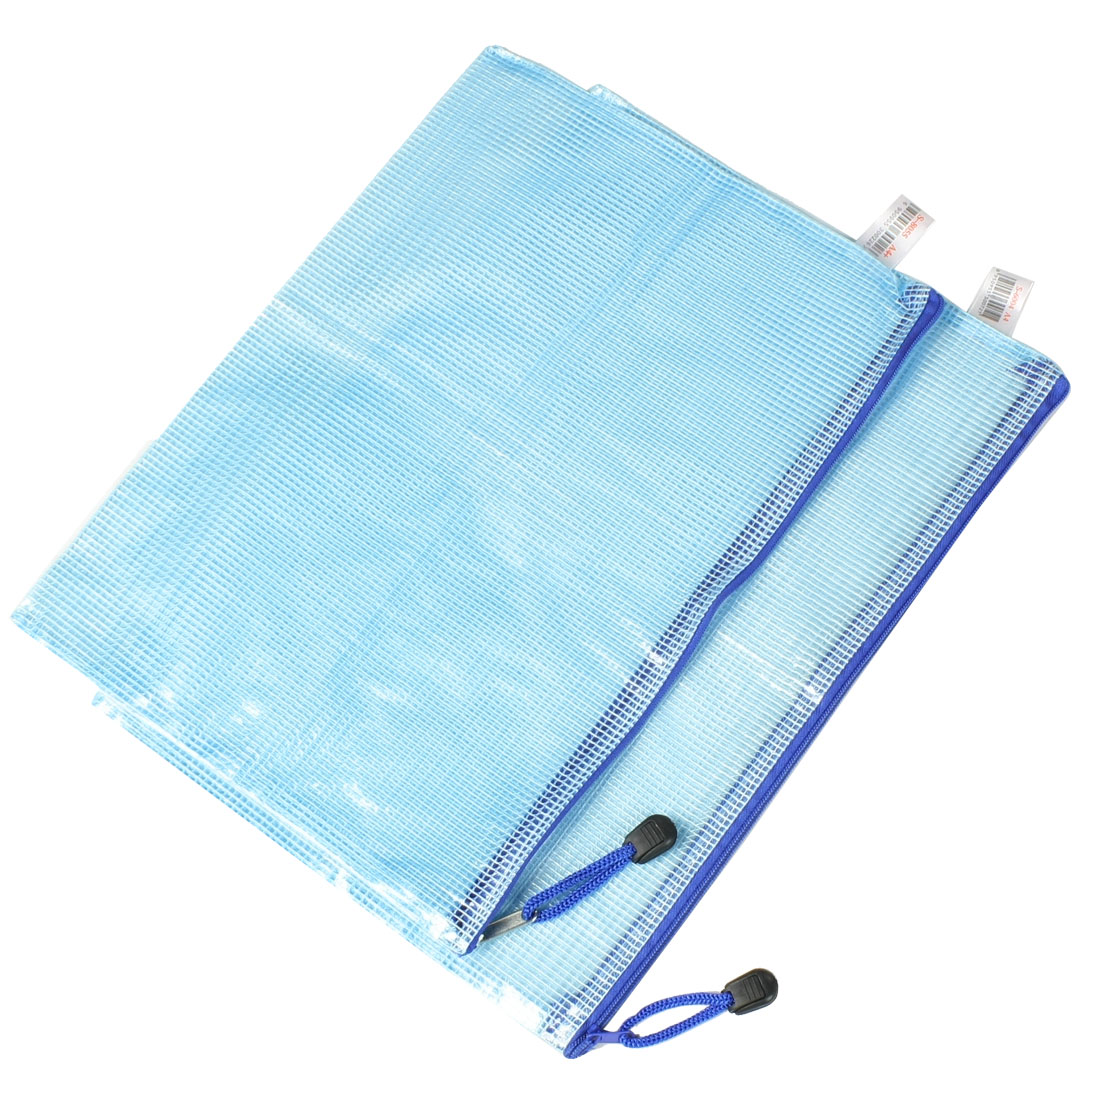 Blue Soft Plastic Zip Closure A4 Paper Document Files Bags 2 Pcs